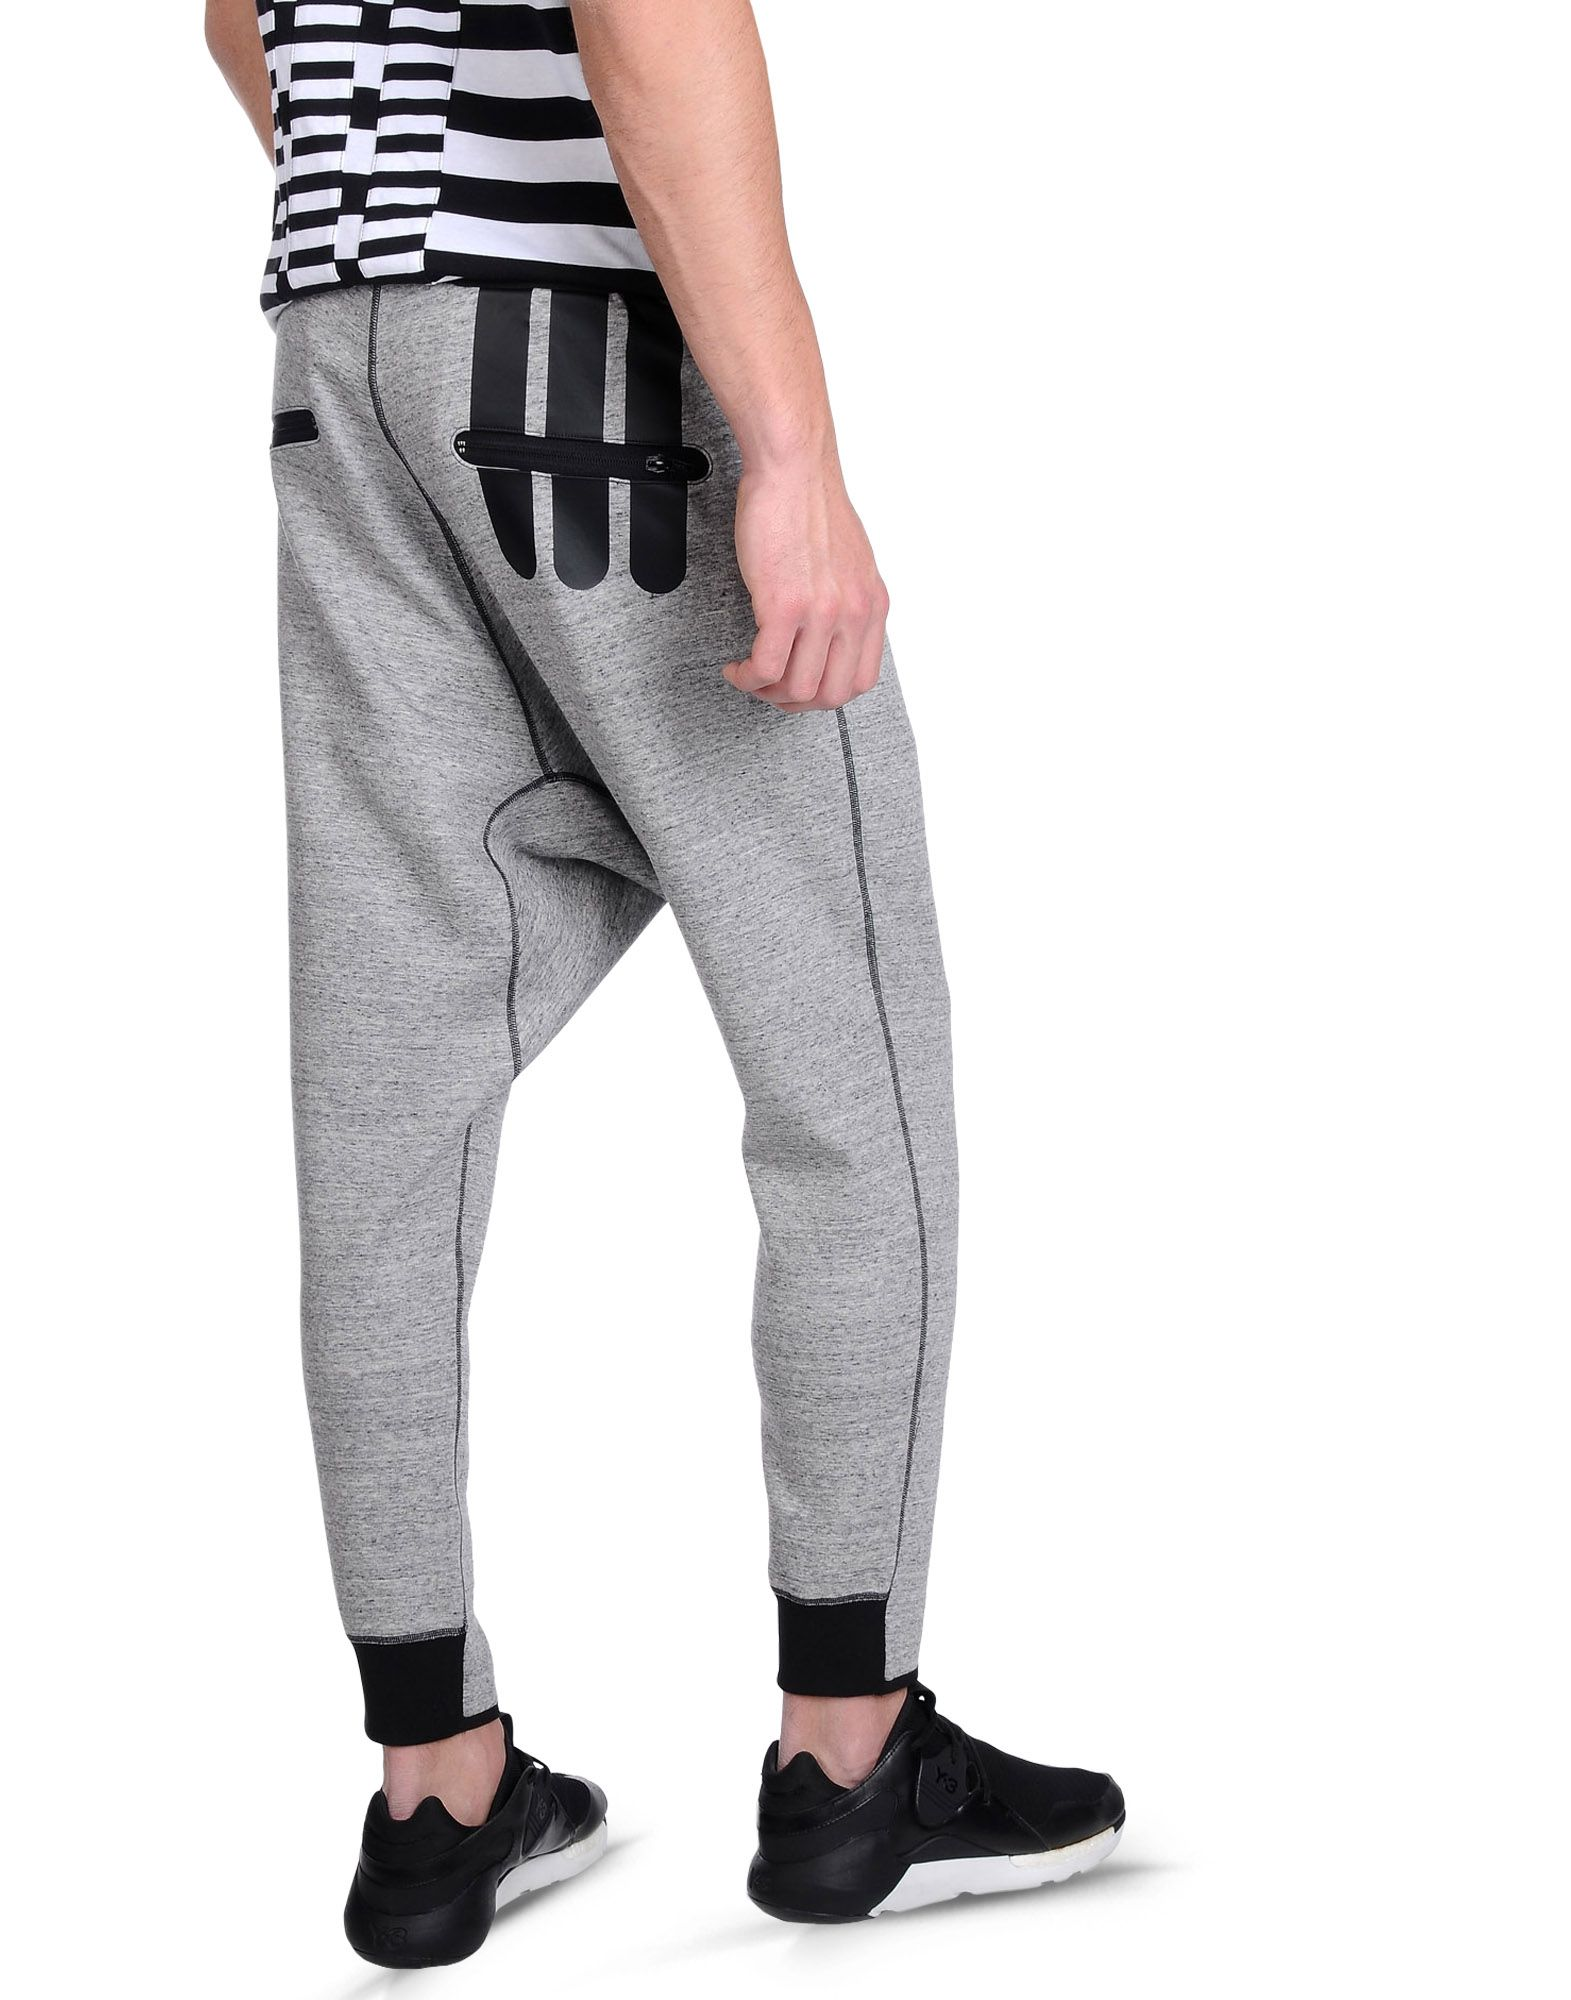 ... Y-3 Y-3 DIGITAL PANT Sweatpants Man ... ba42df56653a